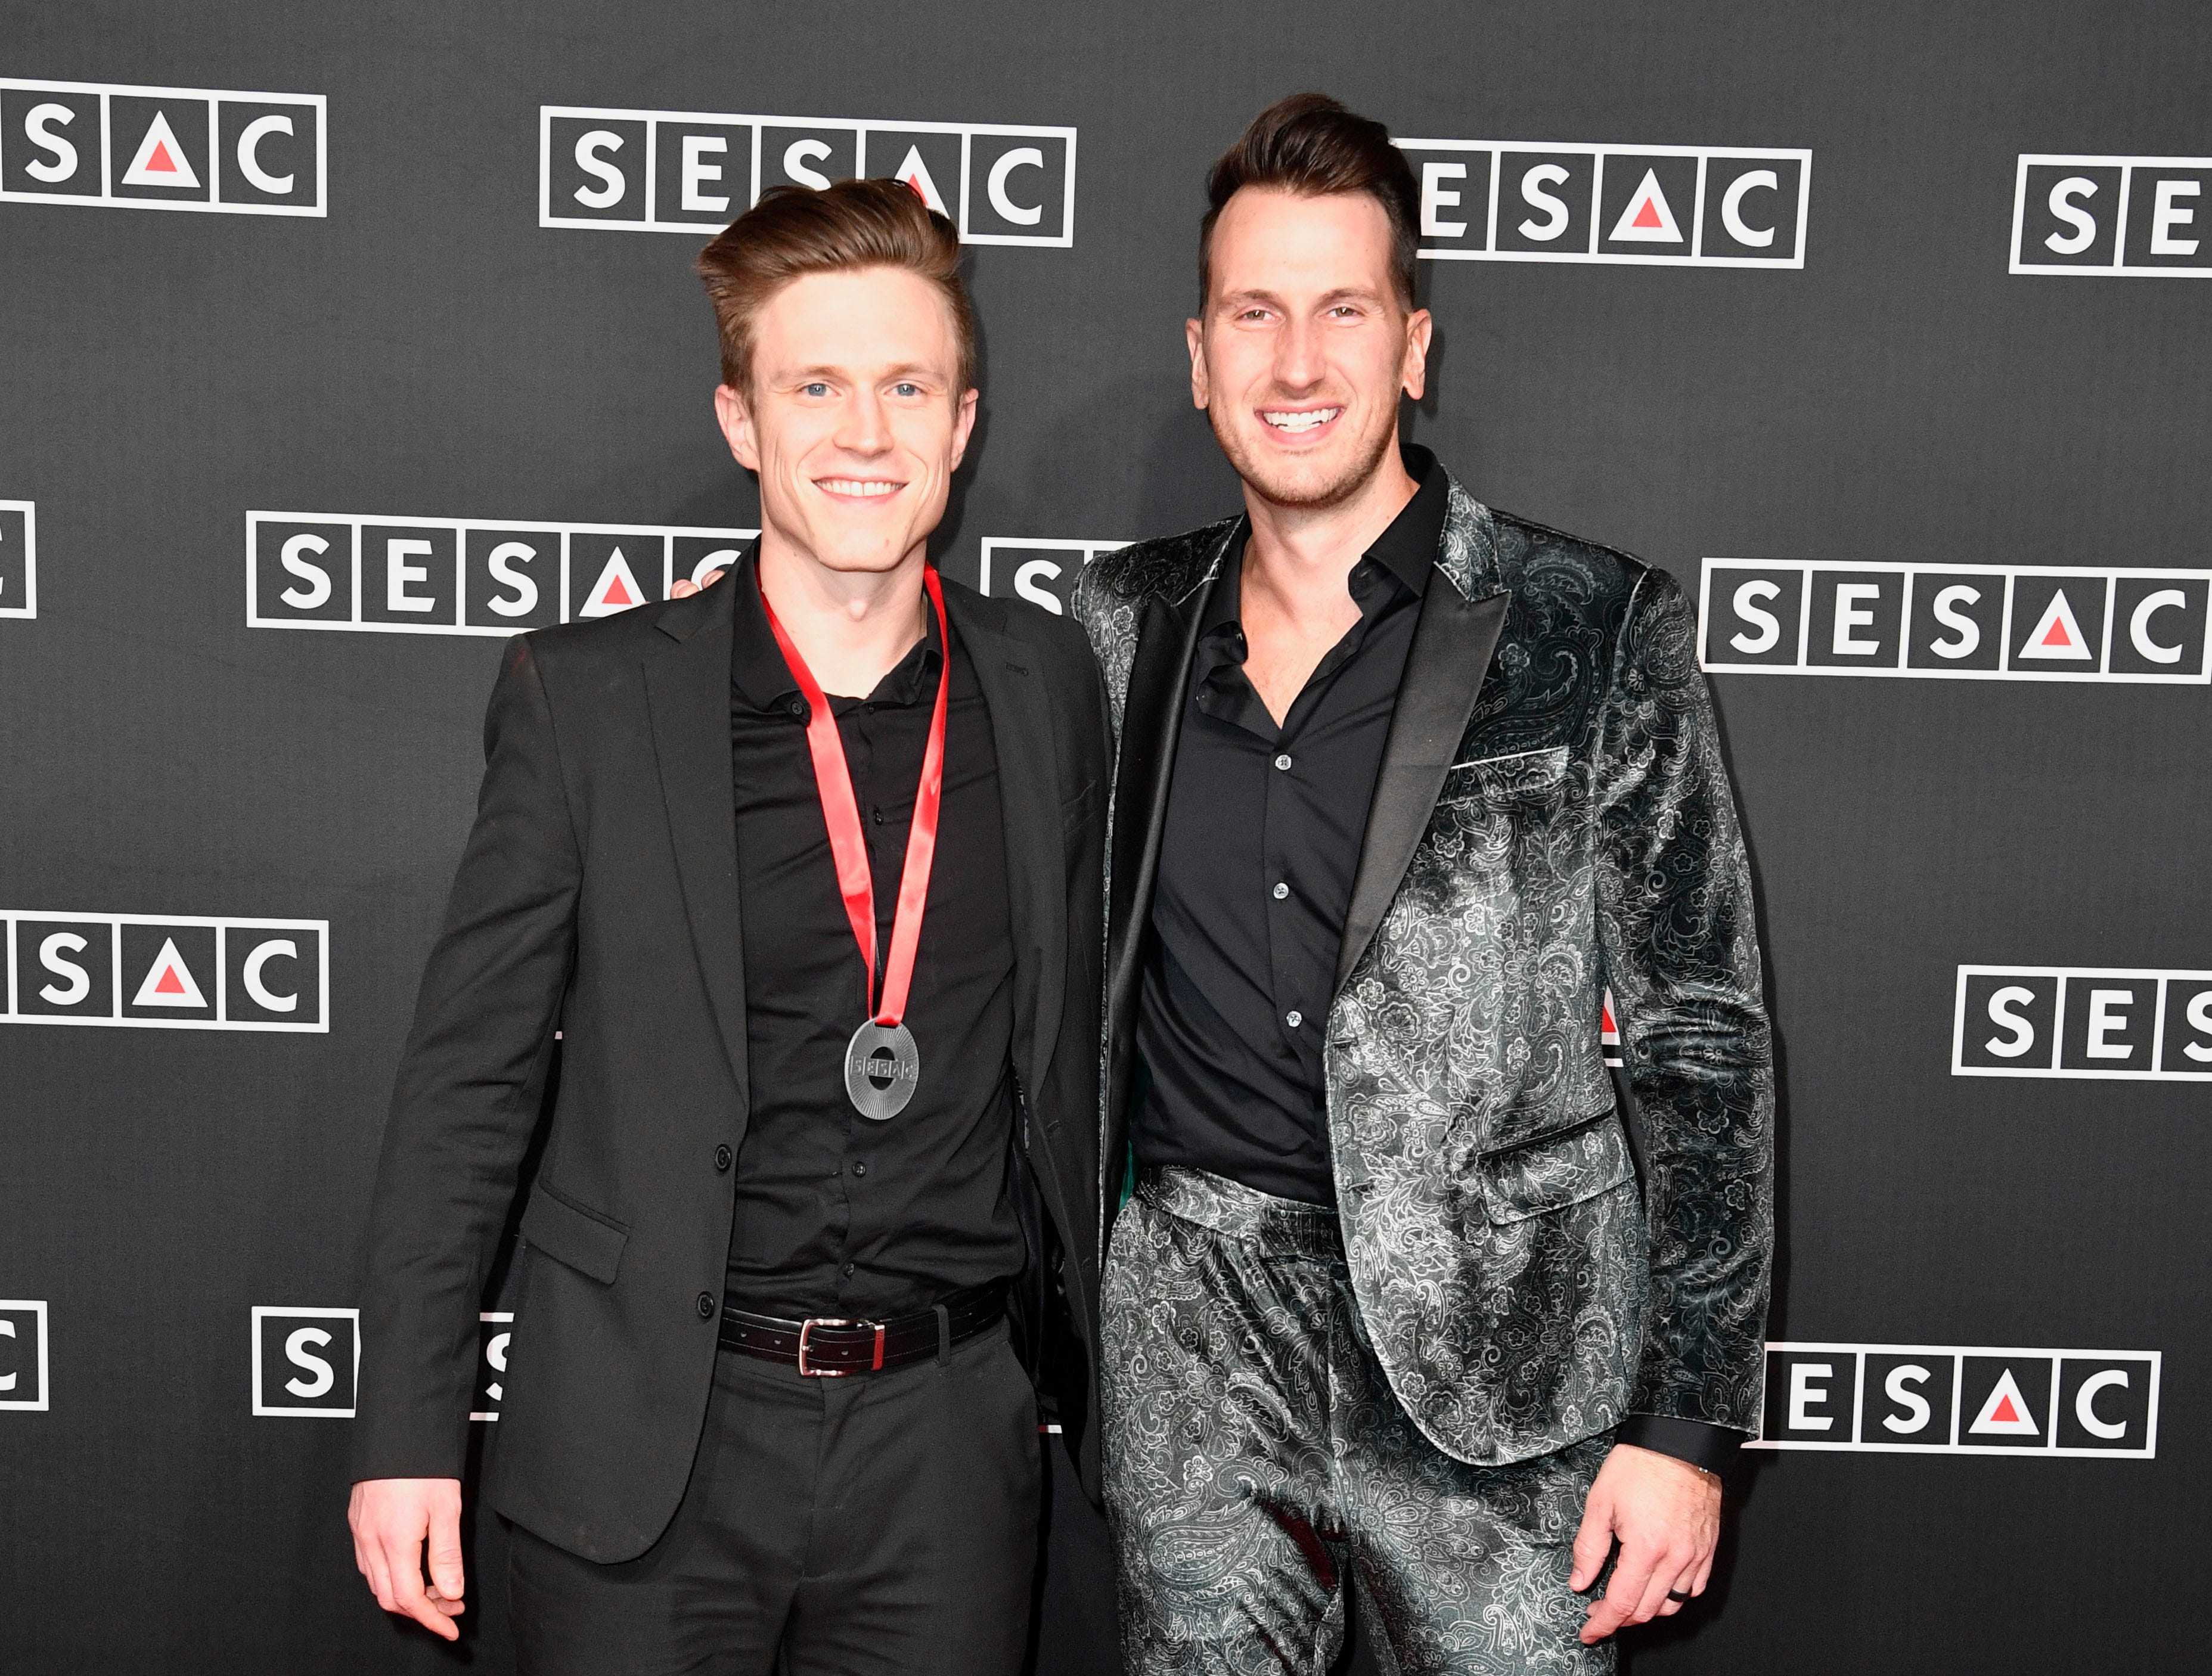 Russell Dickerson and Casey Brown on the red carpet at the SESAC Nashville Music Awards at the Country Music Hall of Fame and Museum Sunday Nov. 11, 2018, in Nashville, Tenn.